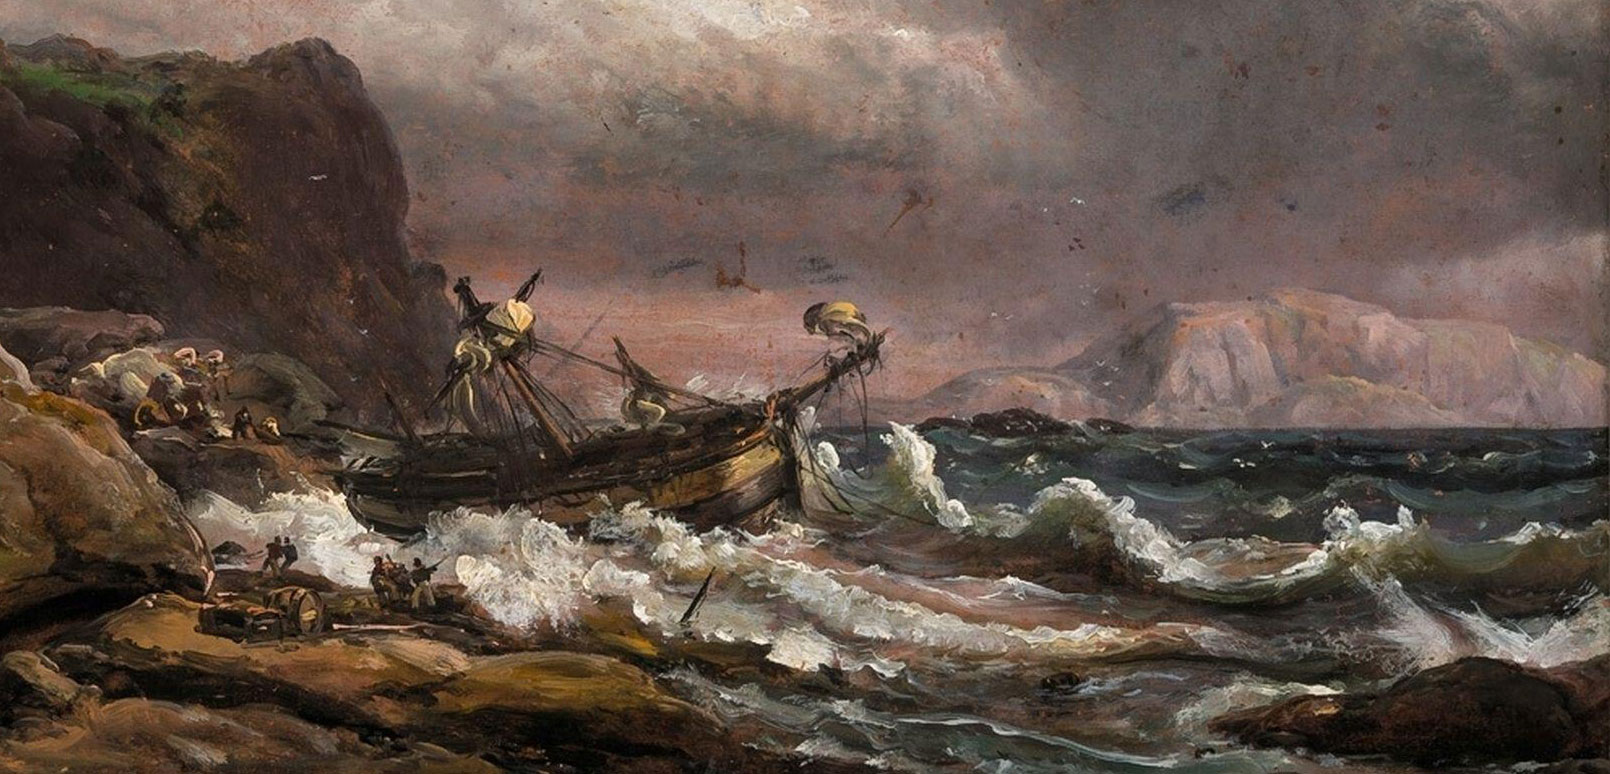 painting depicting a shipwreck